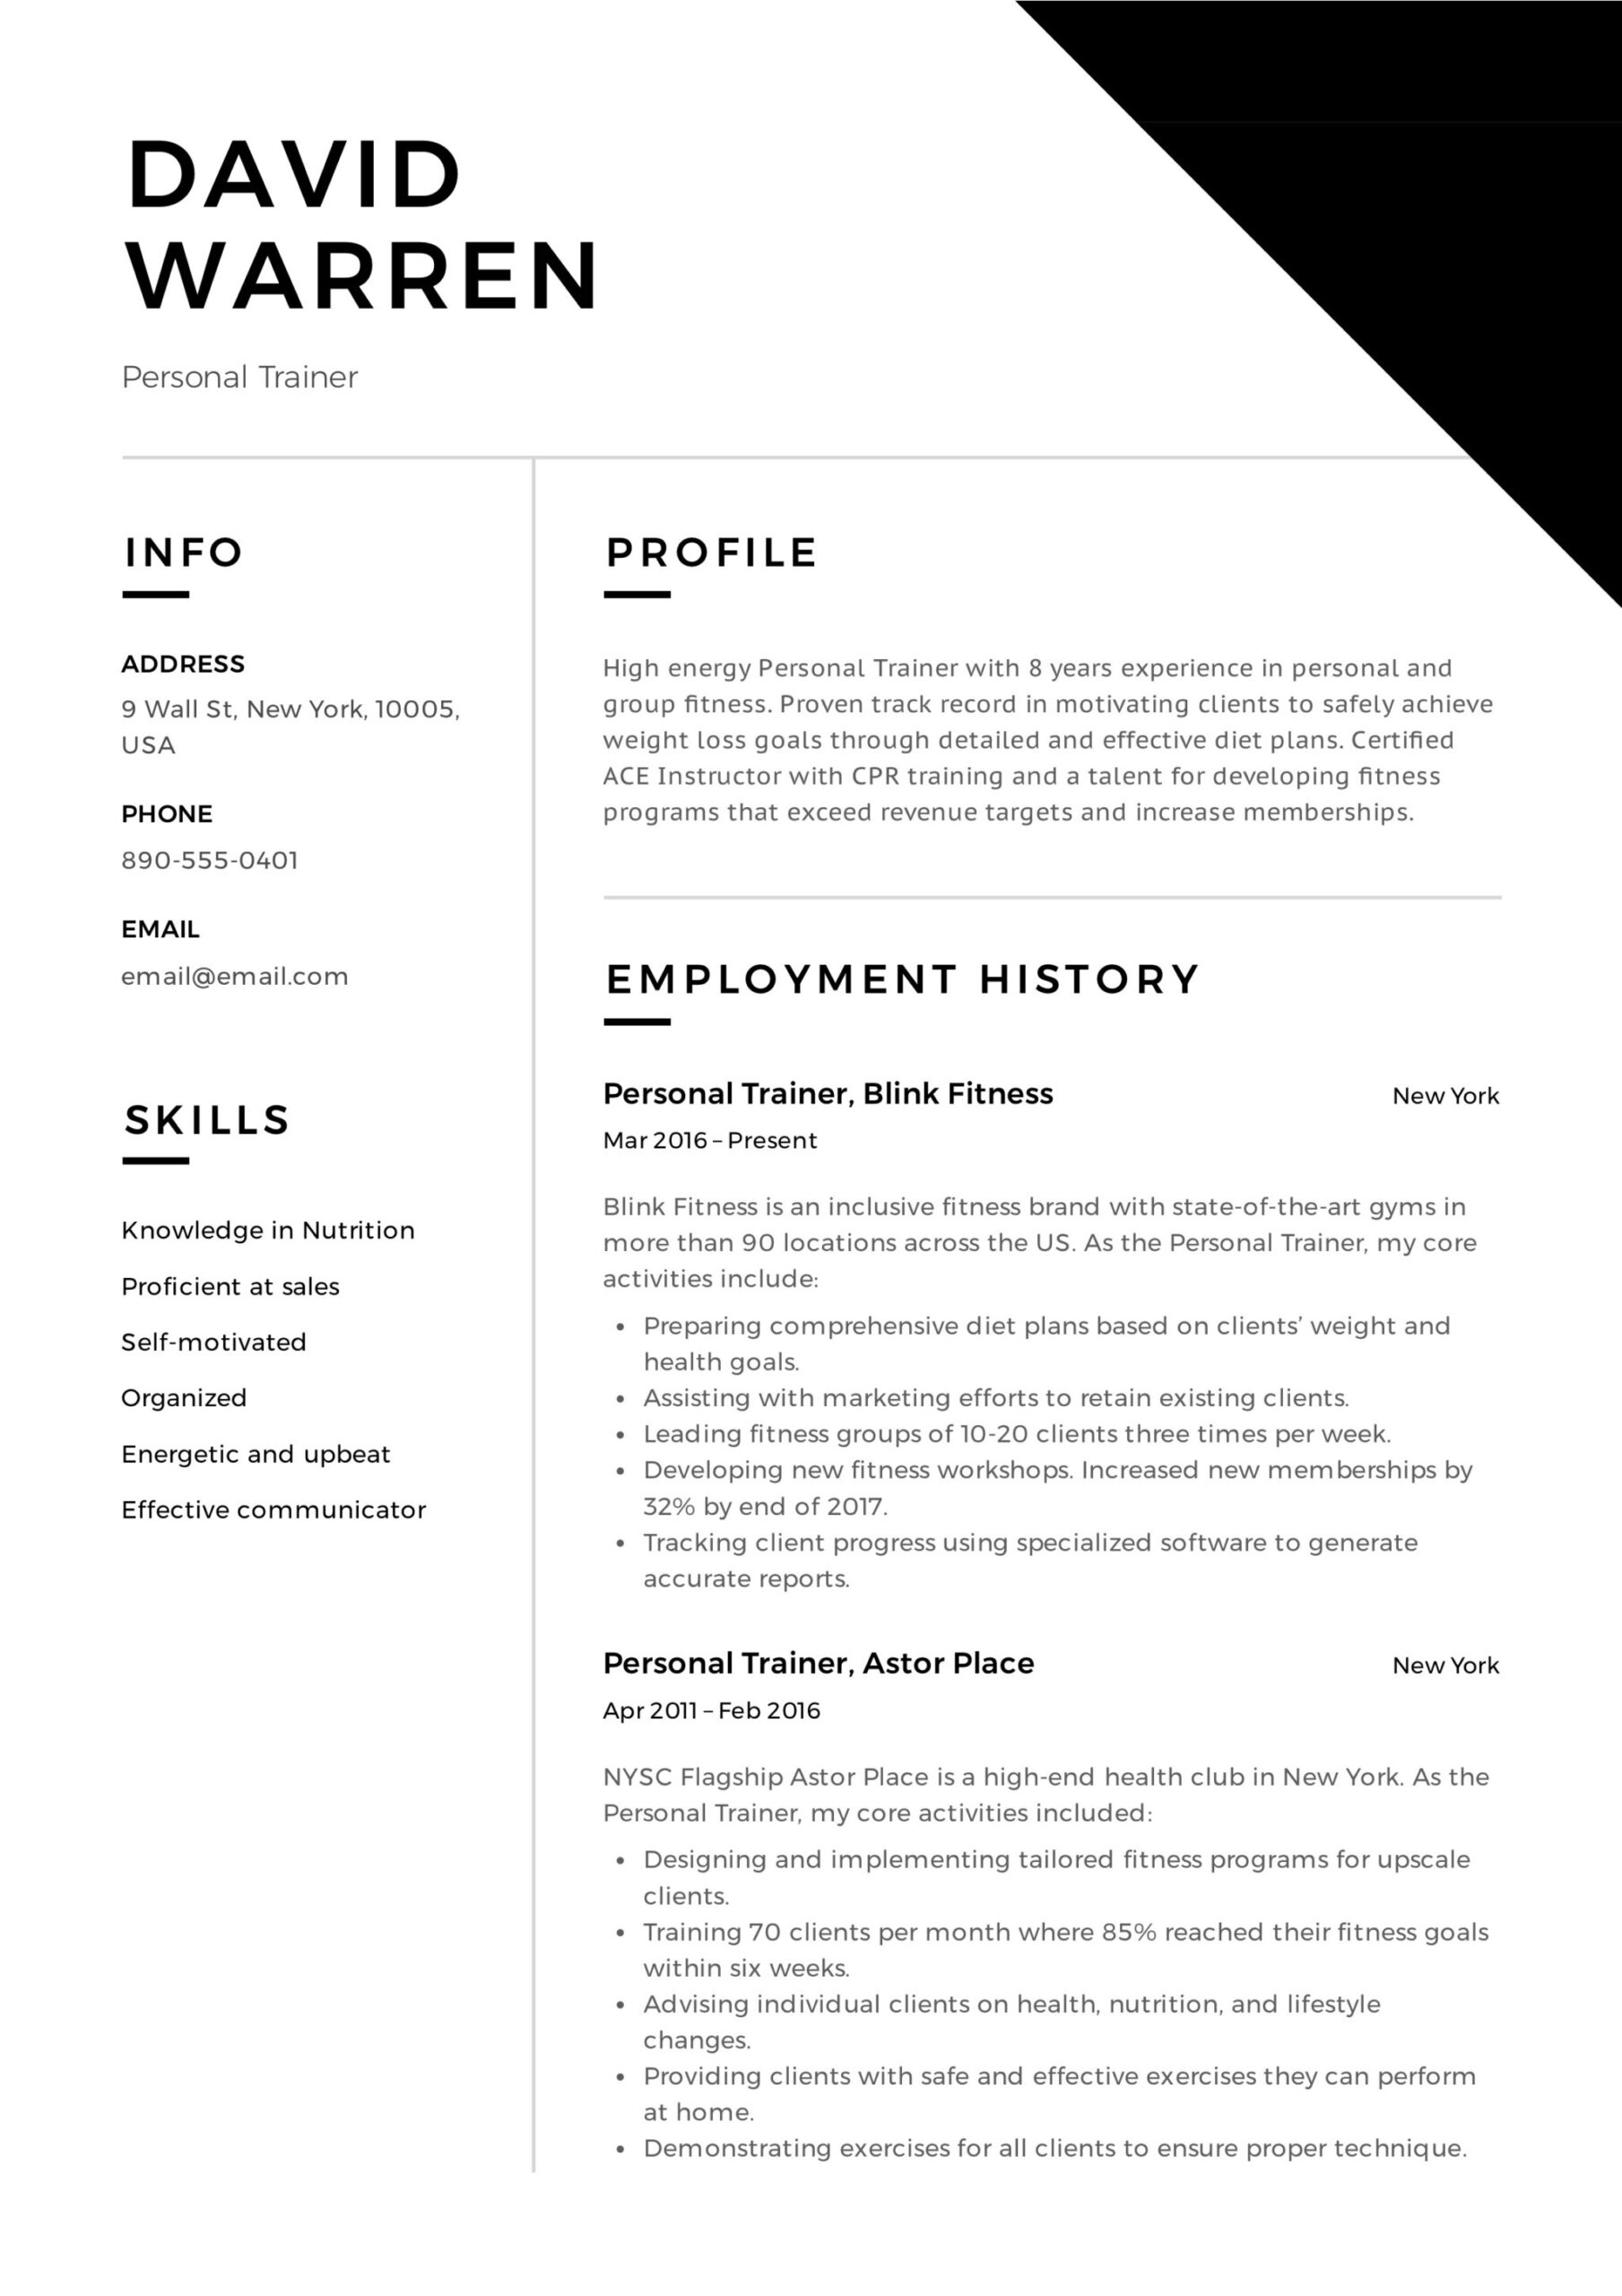 personal trainer resume guide examples pdf personality development sample trainer11 Resume Personality Development Trainer Resume